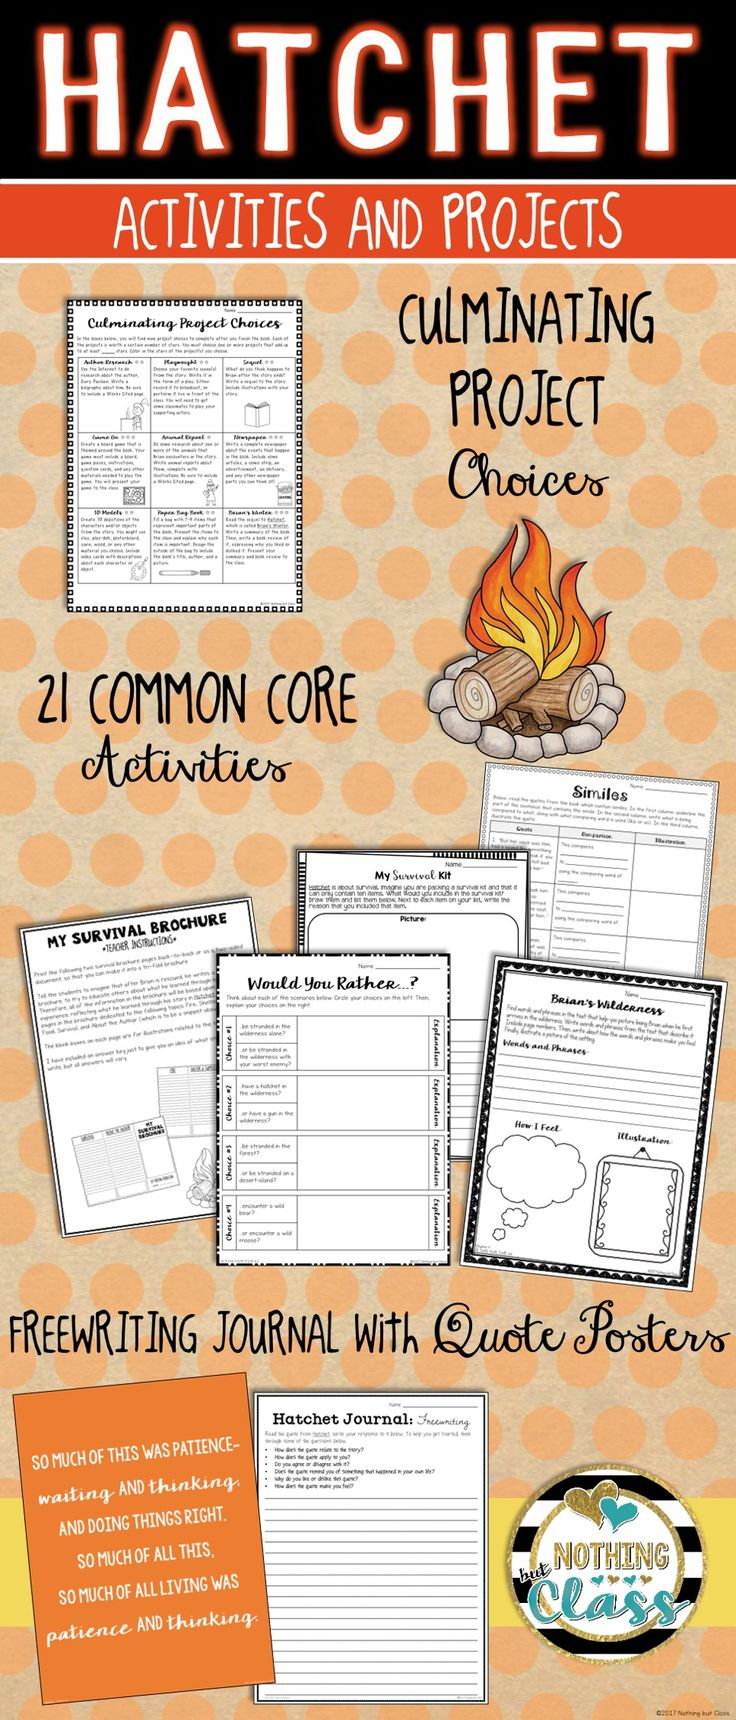 This activity packet for Hatchet, by Gary Paulsen, contains 48 pages of creative, Common Core aligned resources.  Focus standards include character analysis, theme, figurative language, setting analysis, writing, and more. All Common Core activities have the Common Core code listed in the bottom corner, keeping both you and your students focused.   Perfect for whole classes, small groups, or even individuals, this toolbox is brimming full of creative ways for students to practice and then…